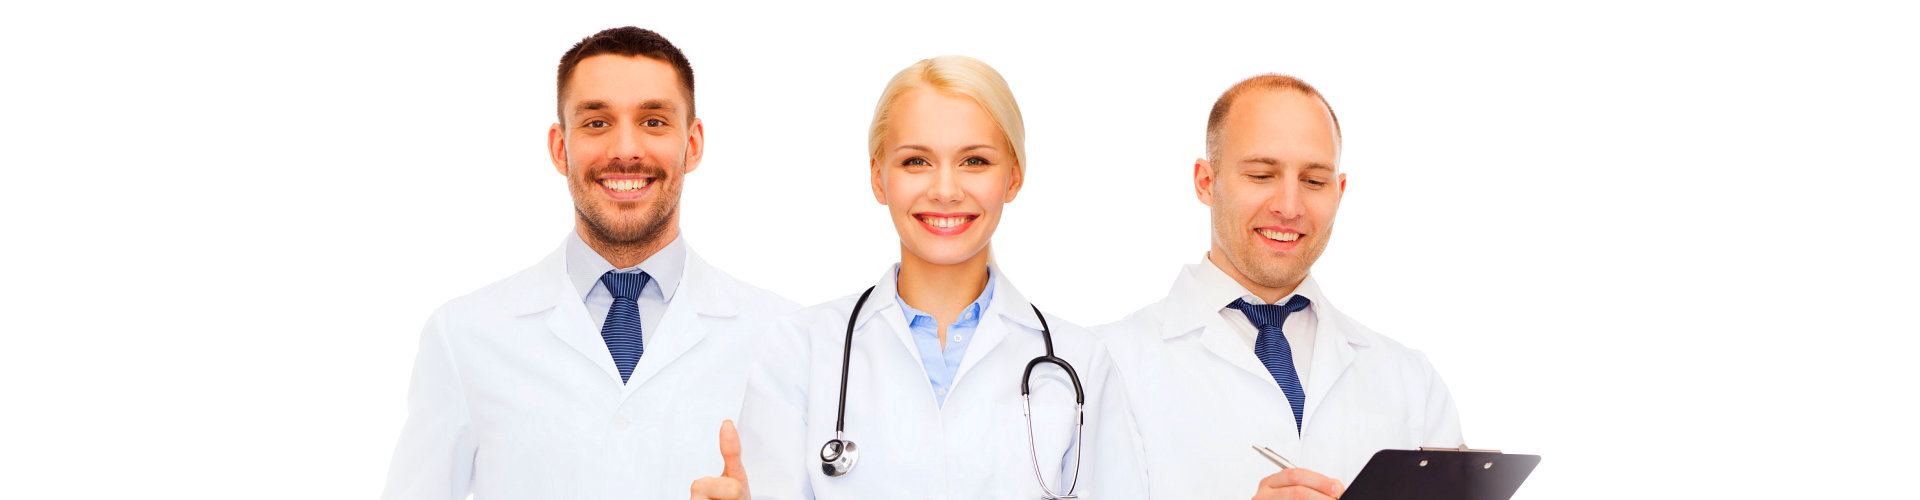 a group of doctors smiling